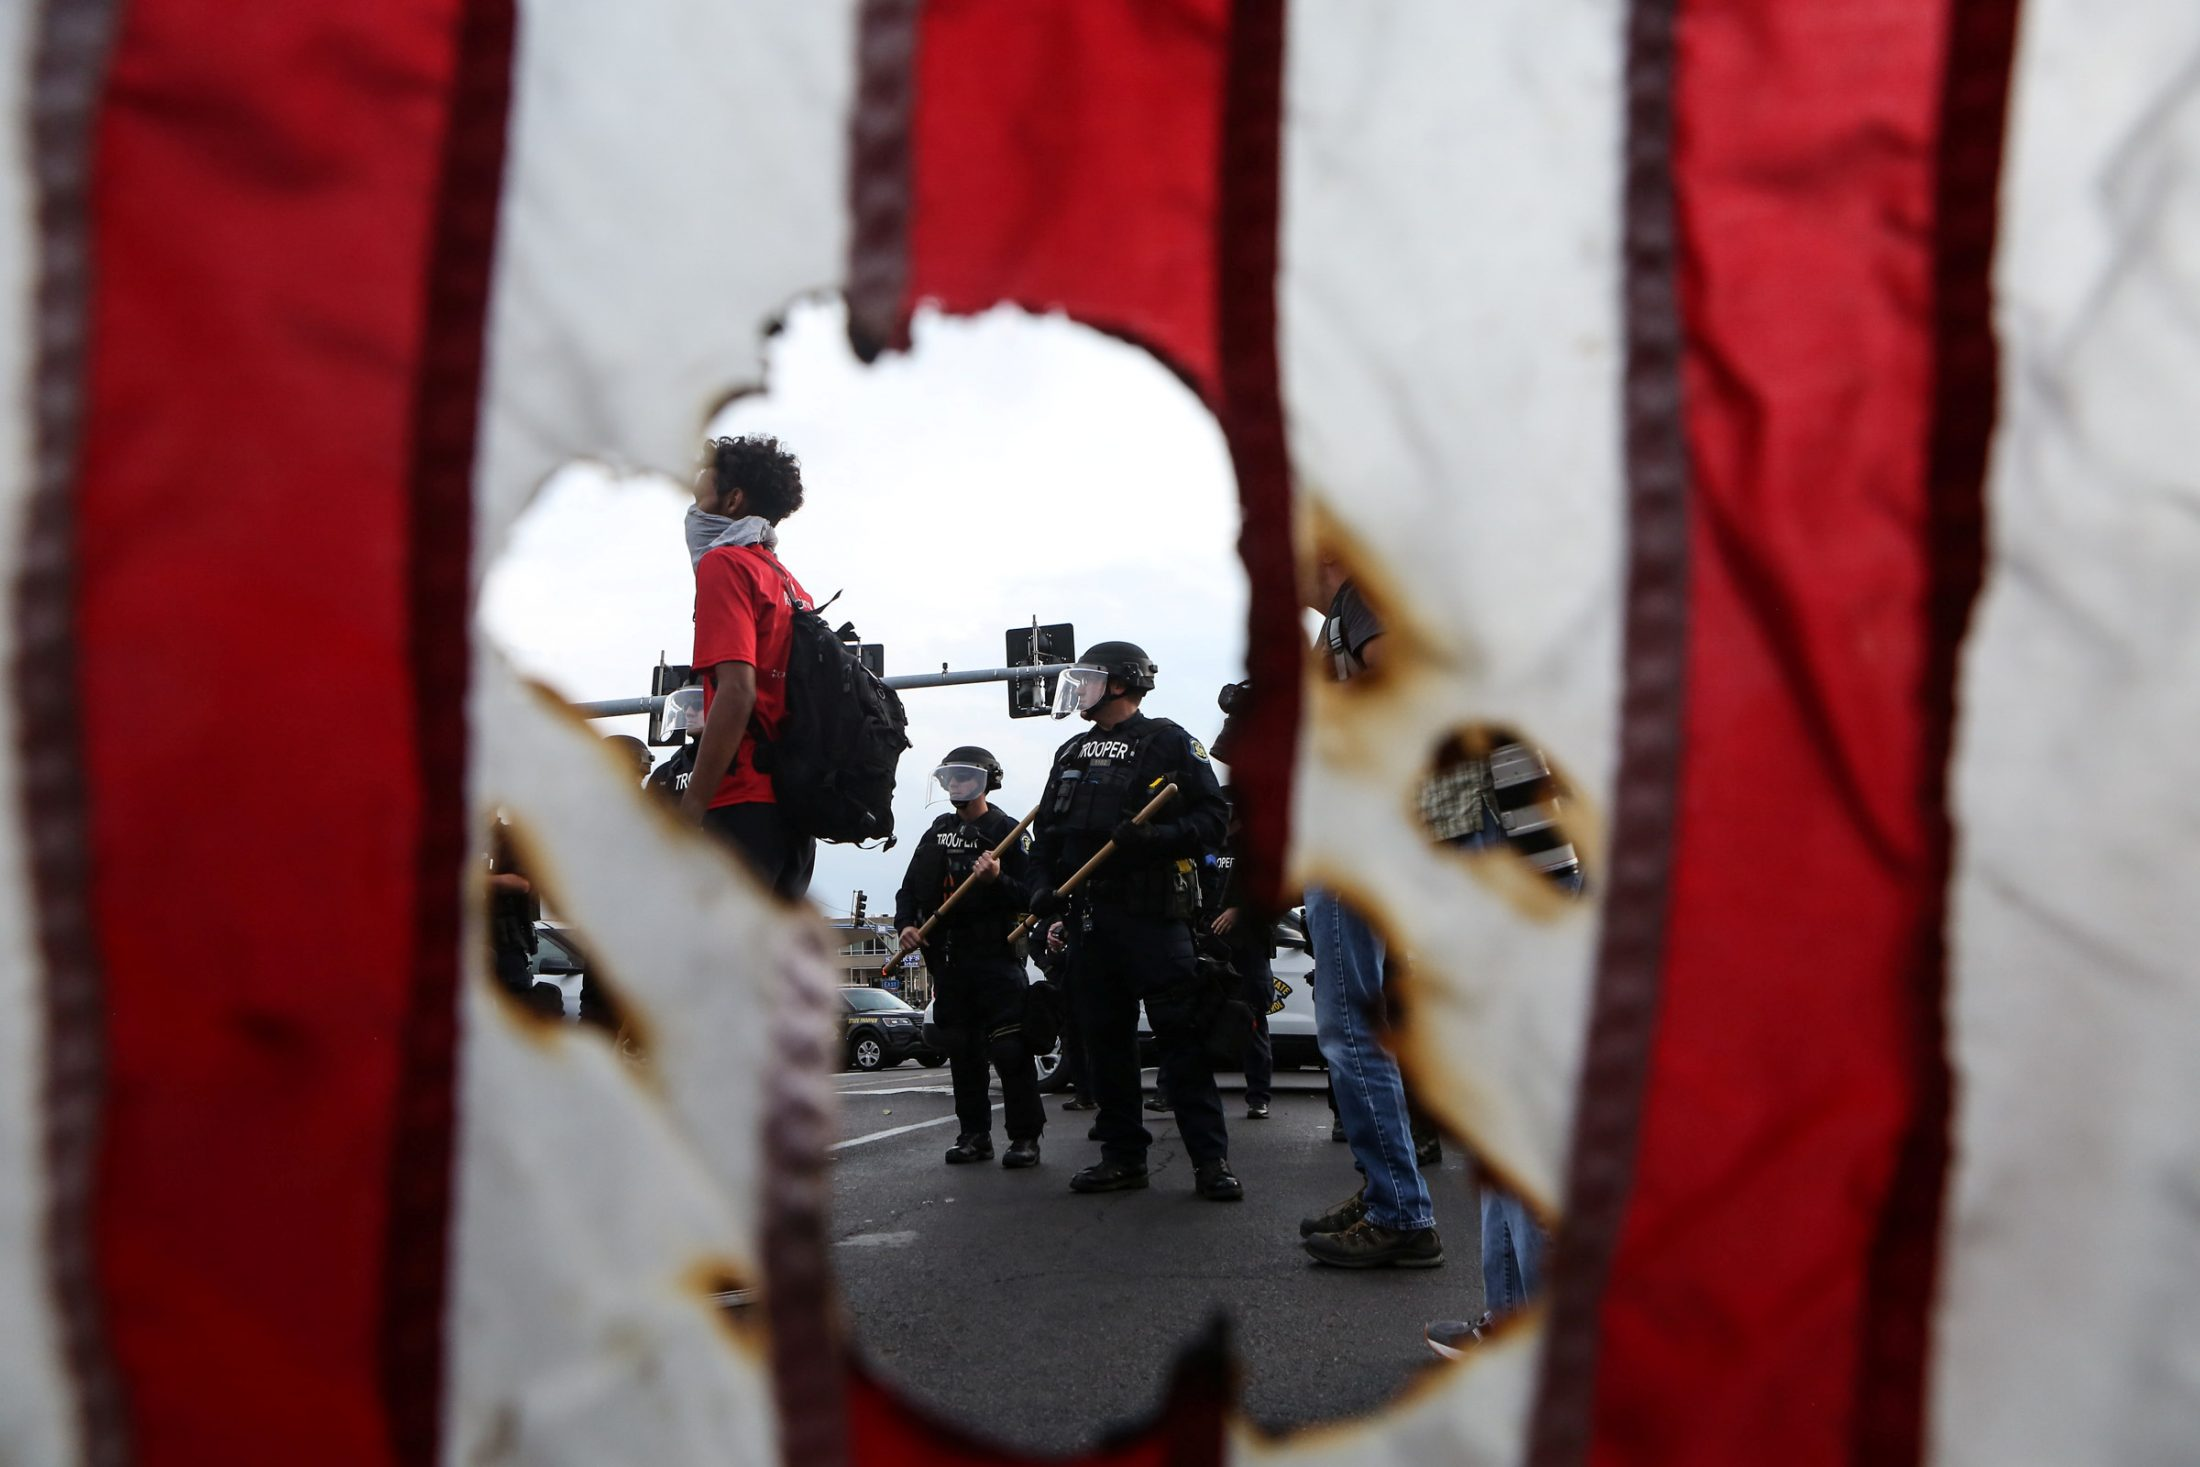 Police in riot gear and a protester stand near a burned U.S. flag after the not guilty verdict in the murder trial of Jason Stockley, a former St. Louis police officer charged with the 2011 shooting of Anthony Lamar Smith, in St. Louis, Missouri, U.S. Sept. 17. Photo by Lawrence Bryant/Reuters